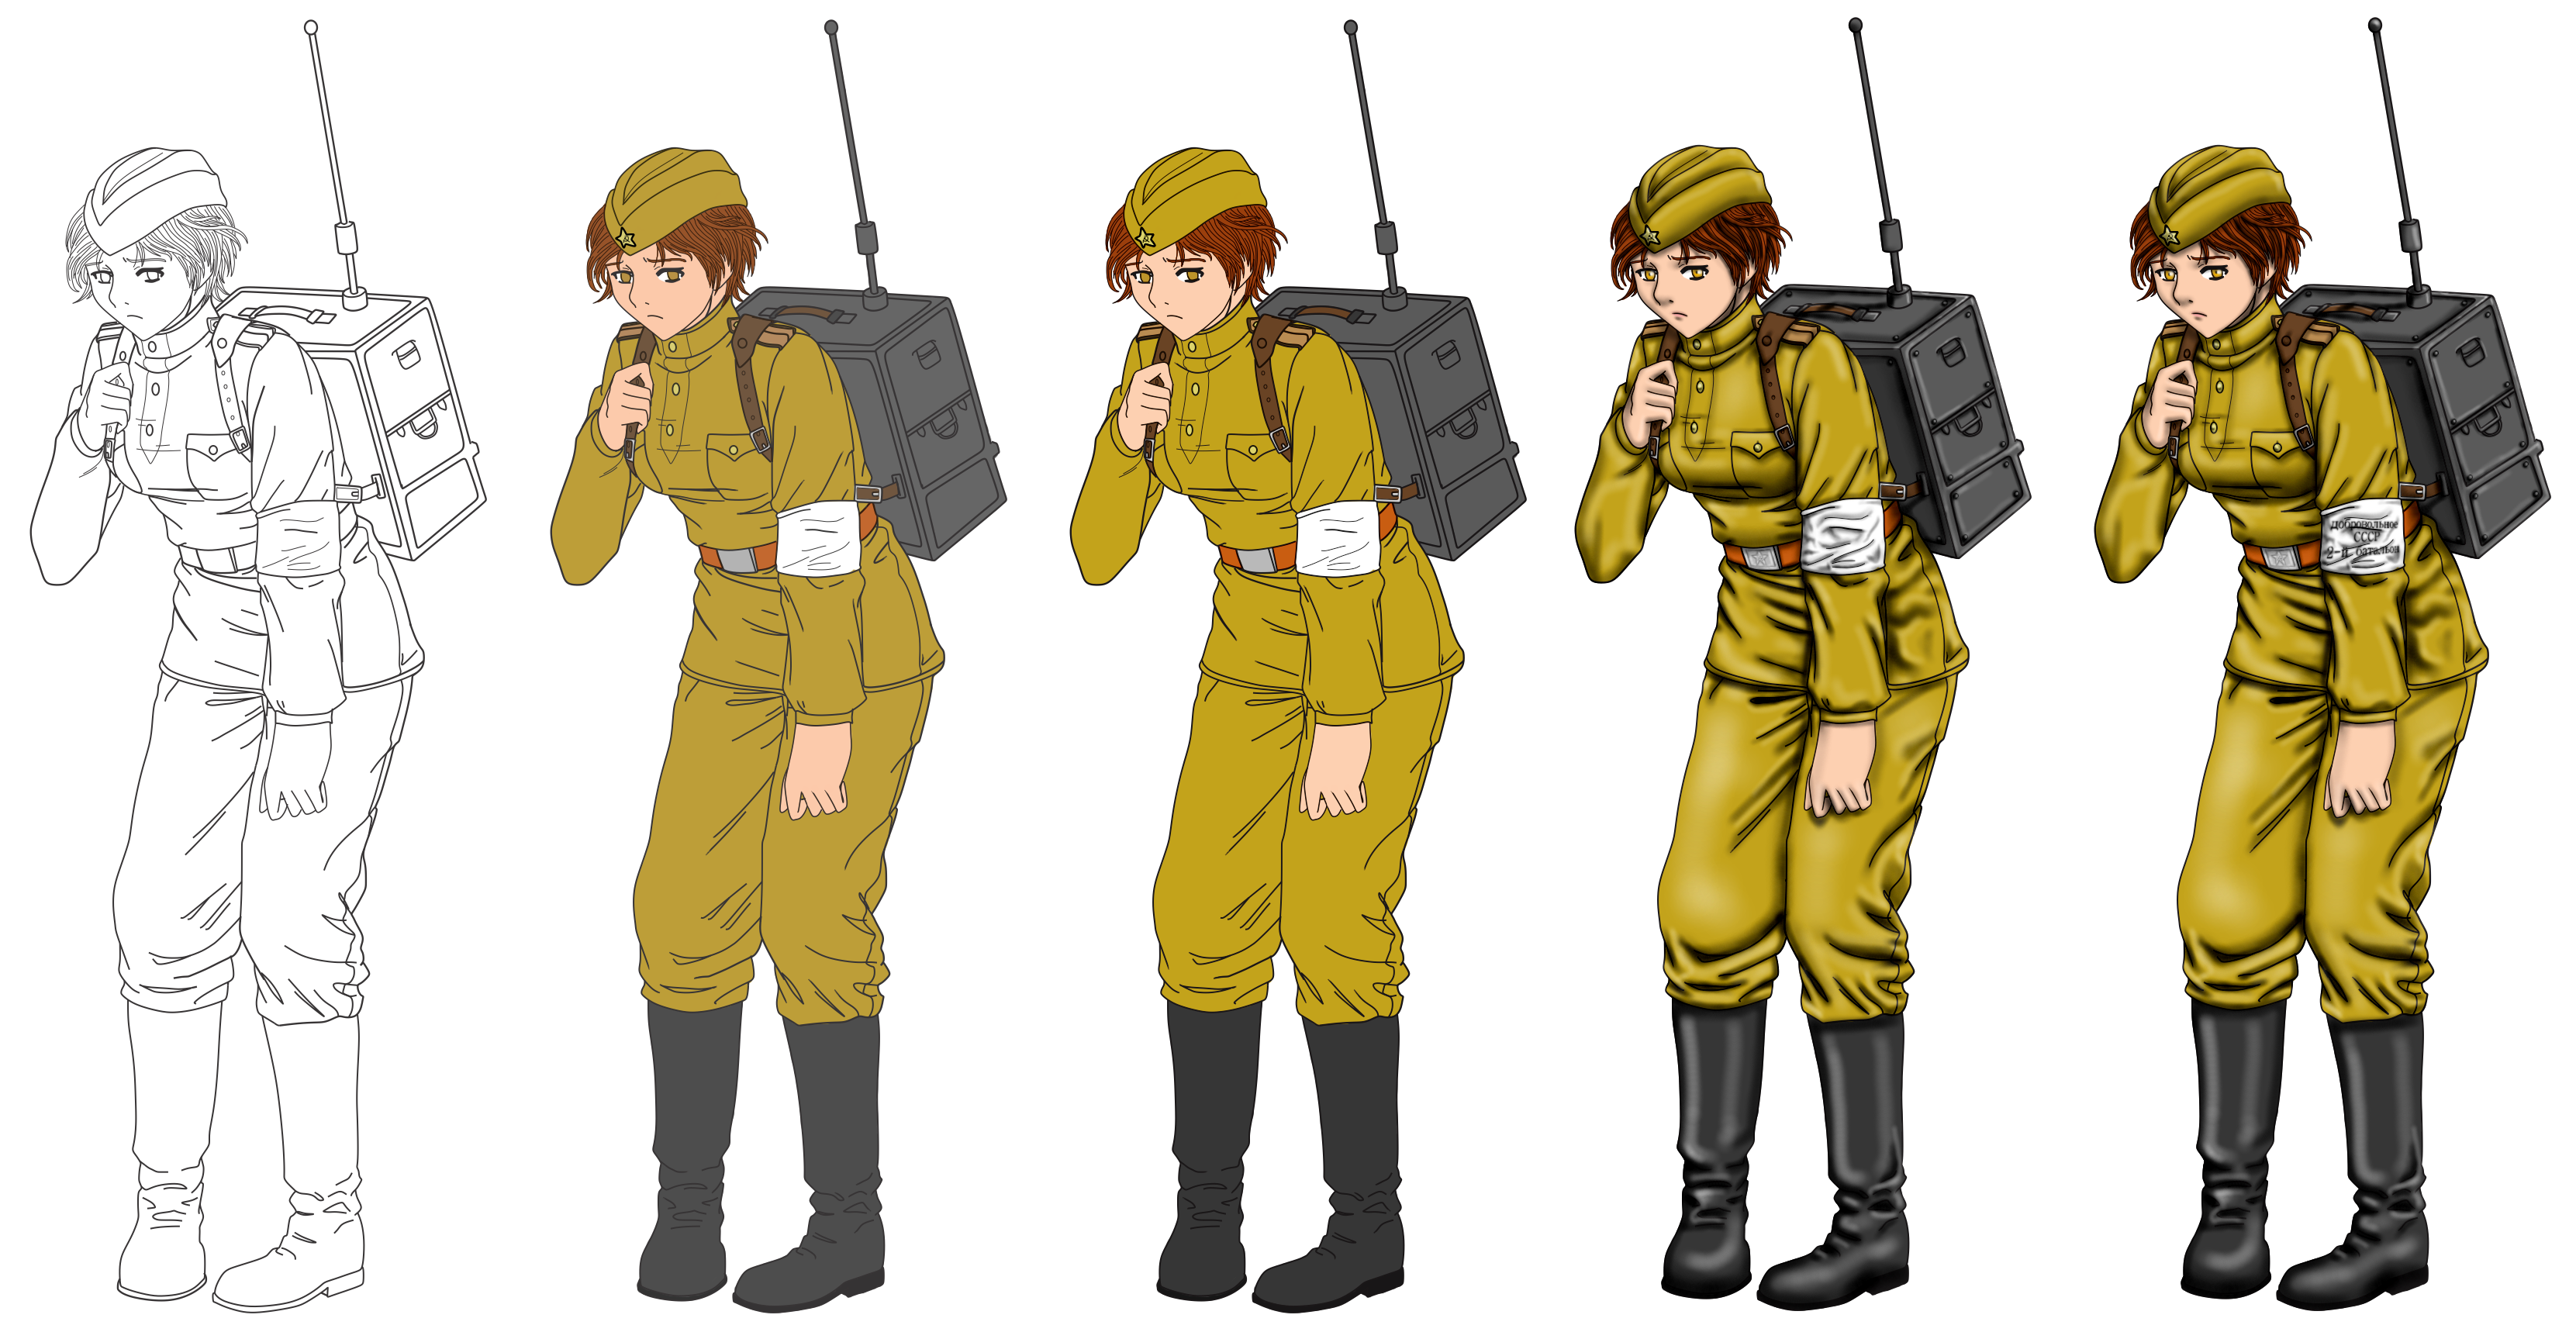 Russian radio girl pack. Military clipart soldier ww1